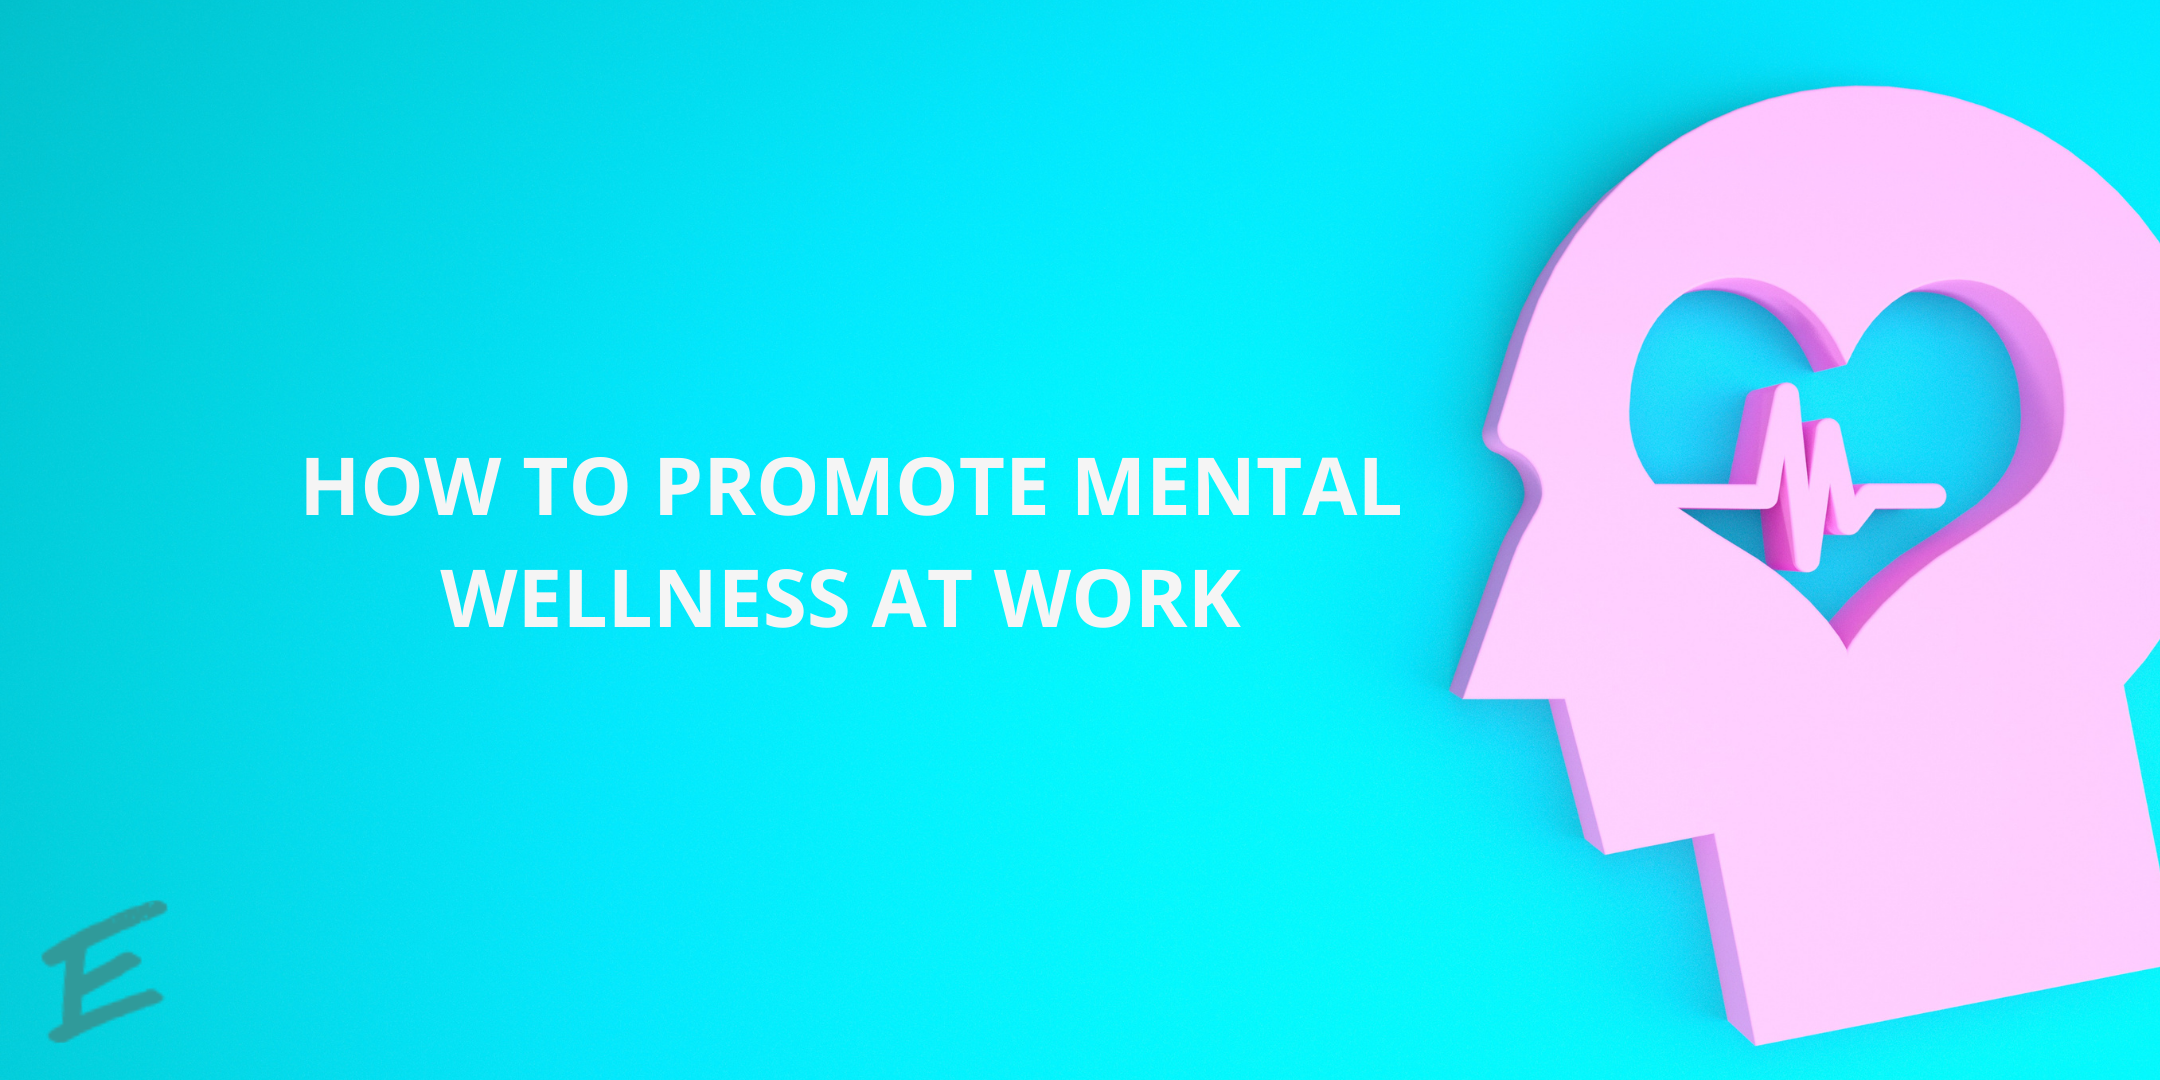 how-to-promote-mental-wellness-at-work